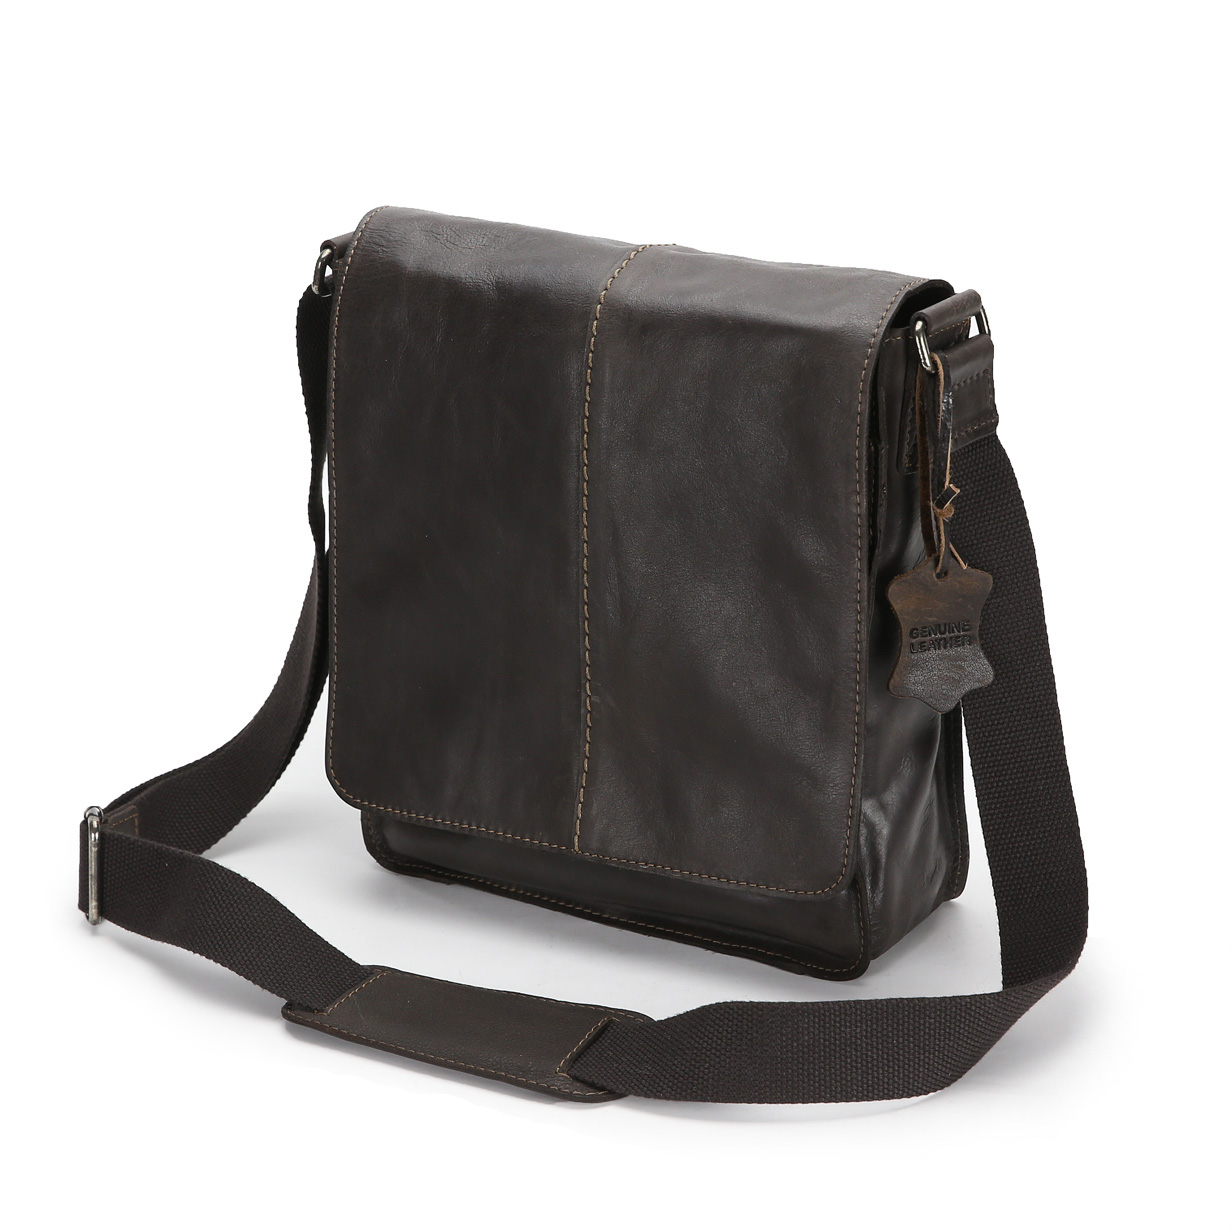 Leather Shoulder Bag Product Photography Example